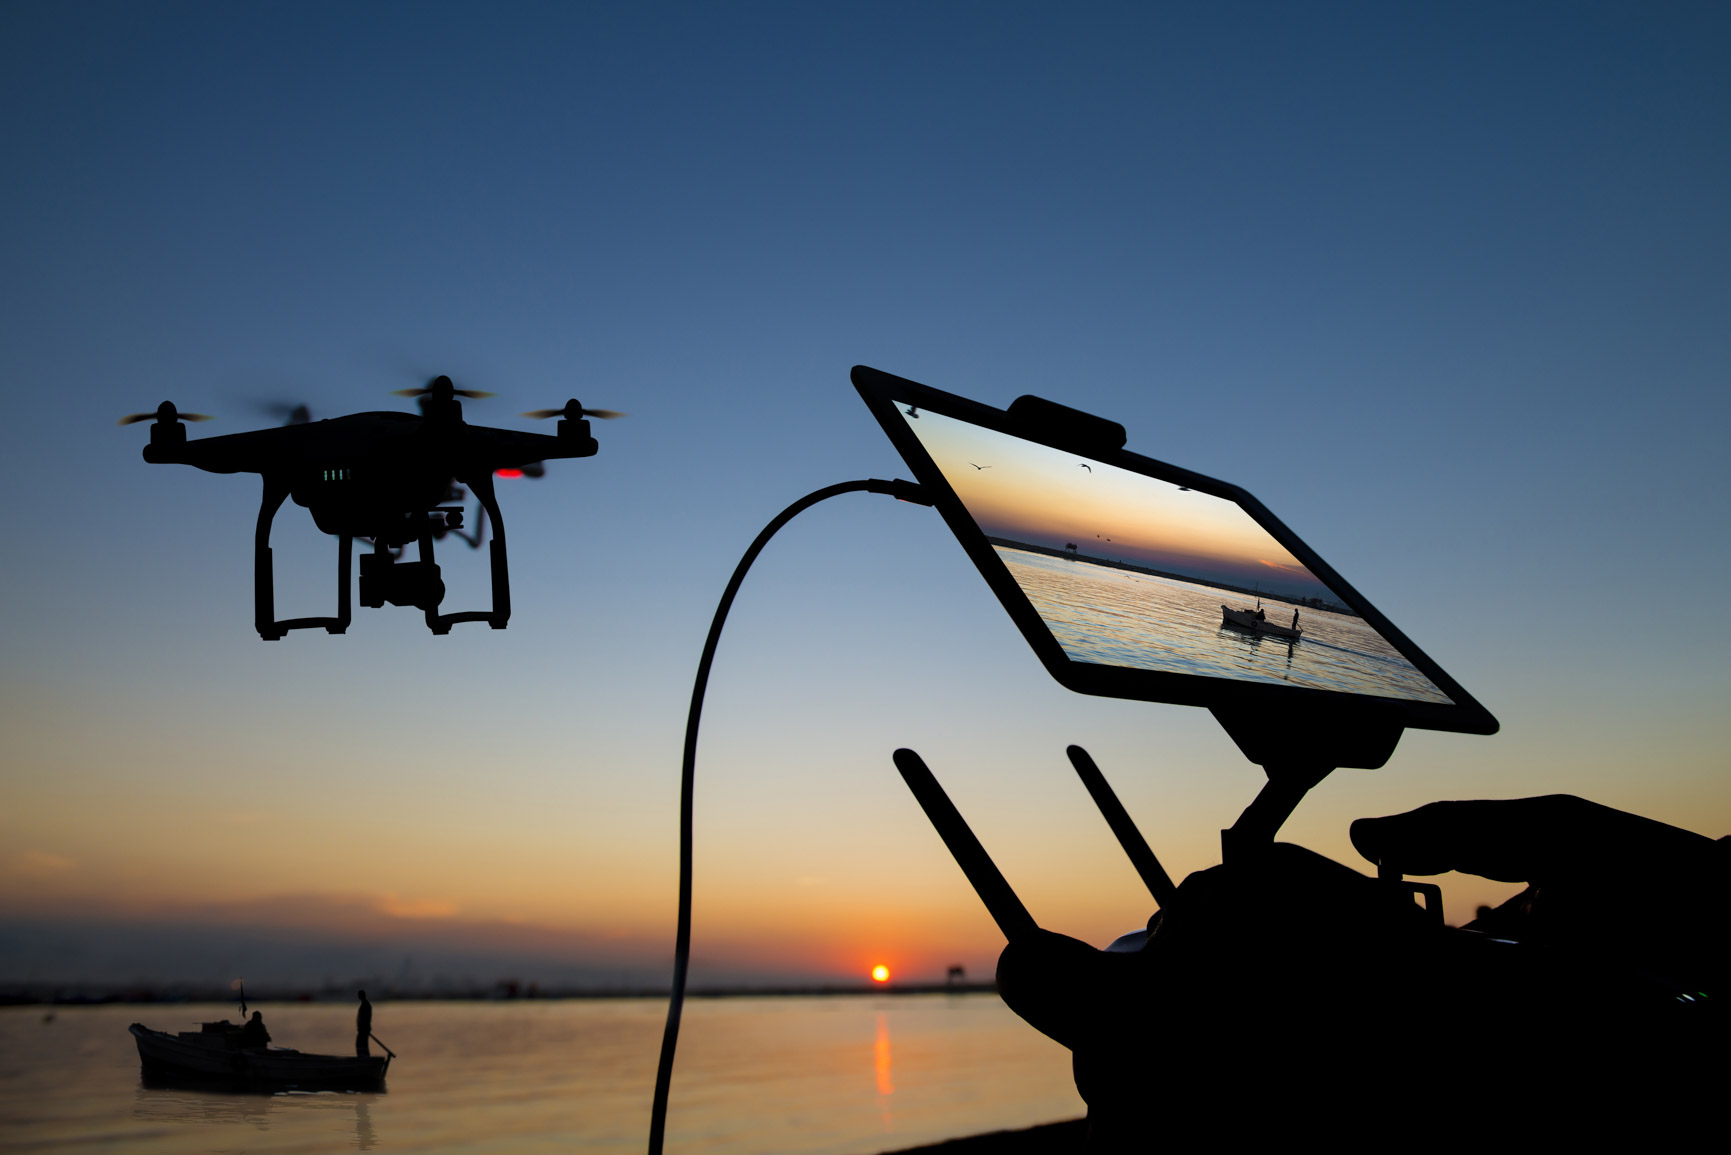 Drone controller with iPad screen attached flying drone in the distance over water at sunset